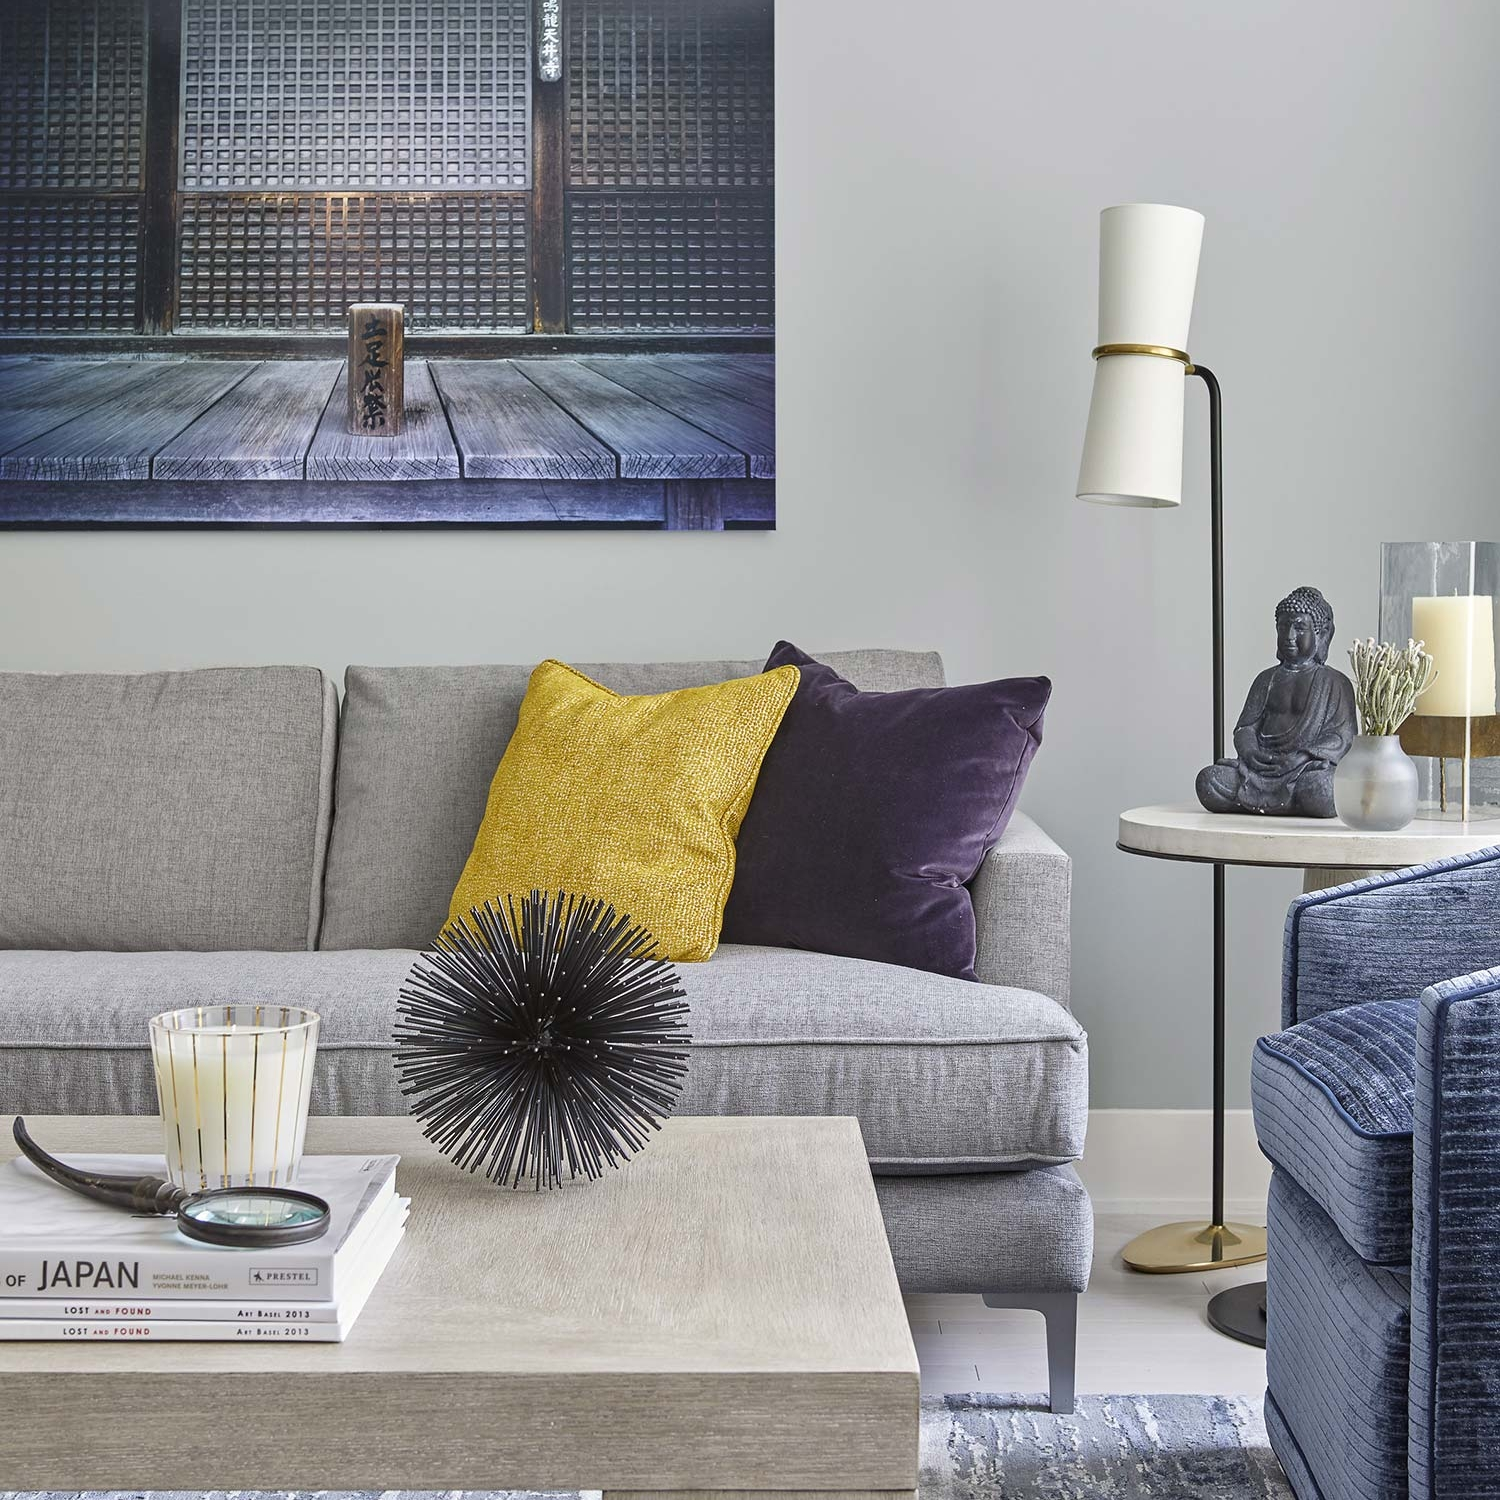 NYC apartment living room featuring textured contemporary furniture, throw pillows, japanese art and the stone buddha